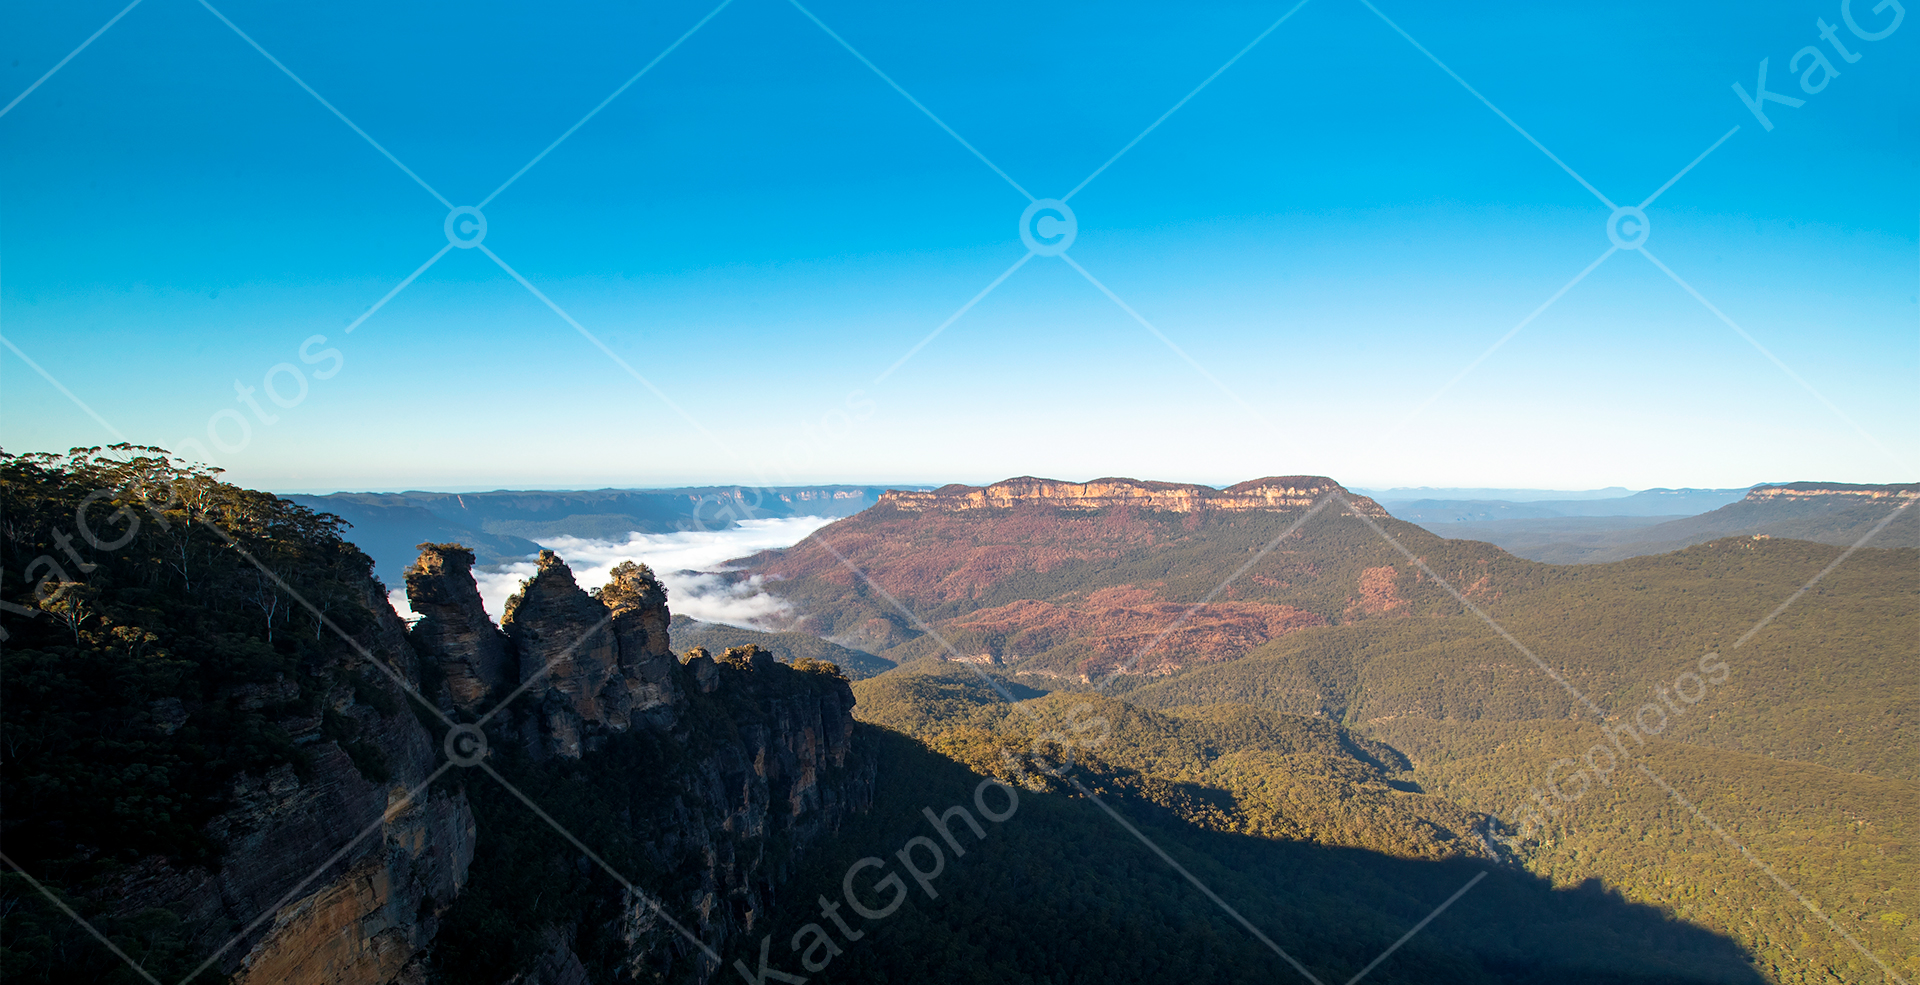 Landscape photography, Australia, National Geographic, blue mountains, pics, Jamison Valley